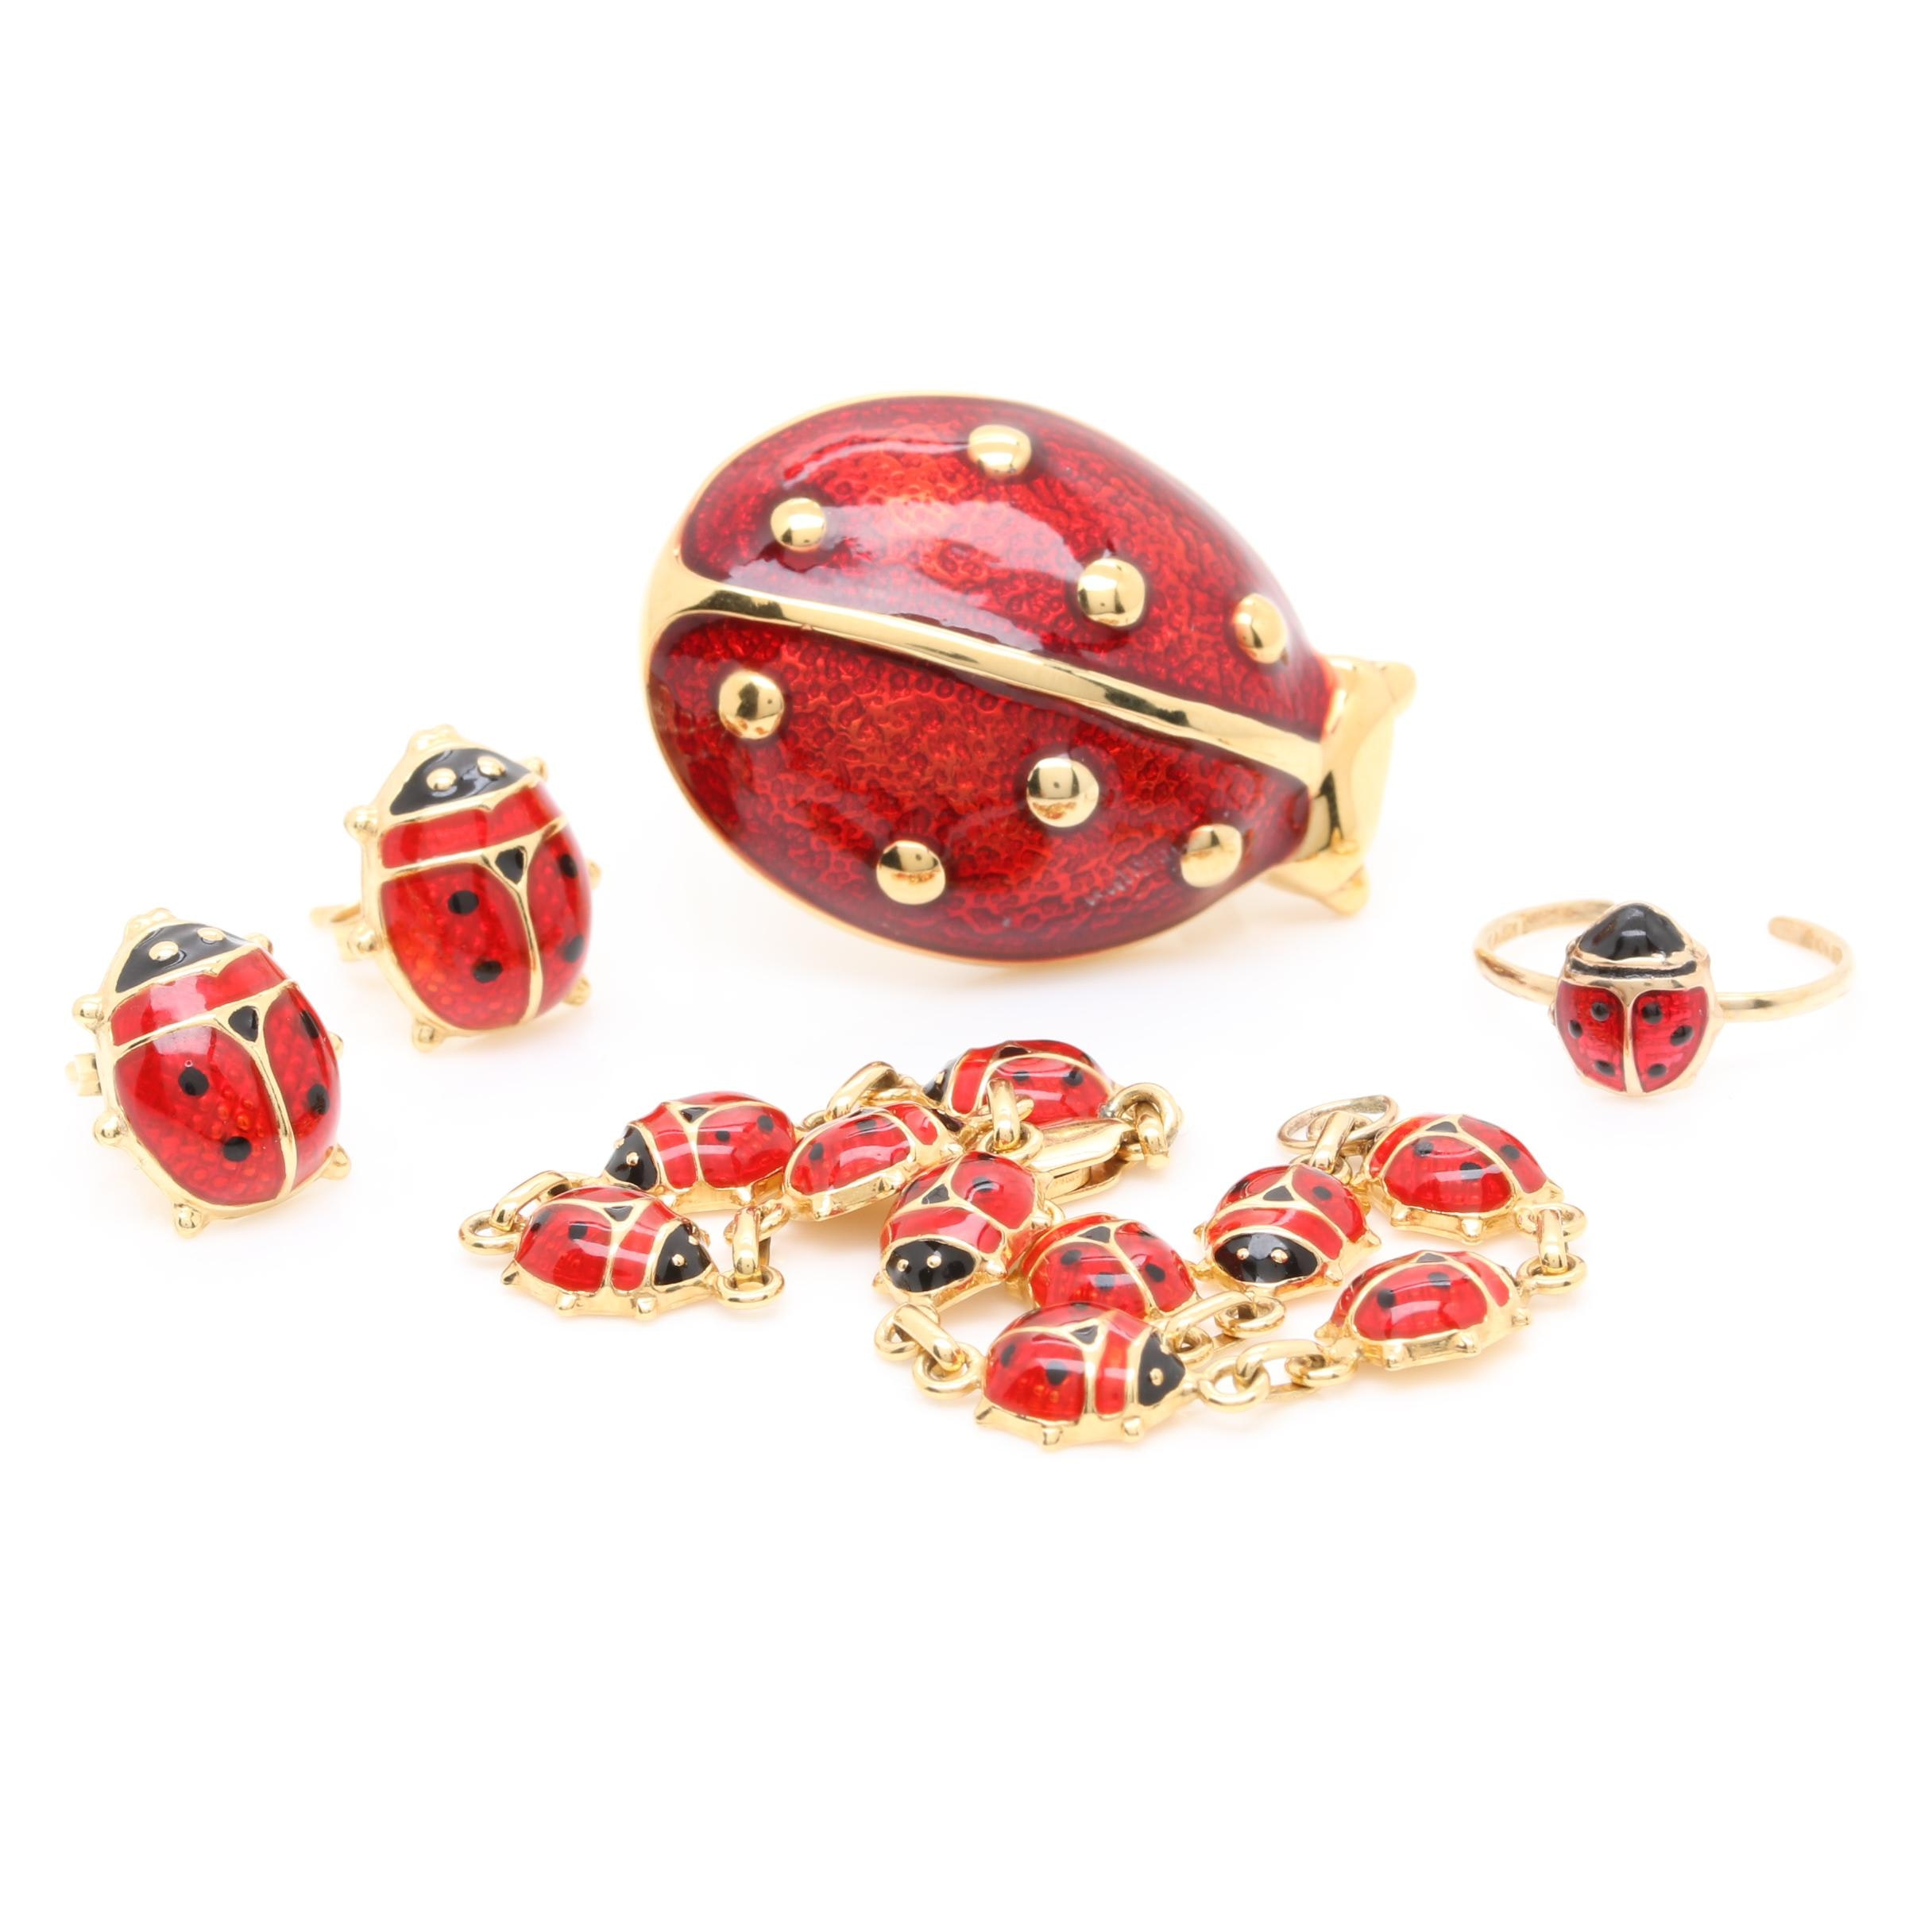 10K and 14K Yellow Gold Enamel Lady Bug Earrings, Bracelet, Brooch and Ring